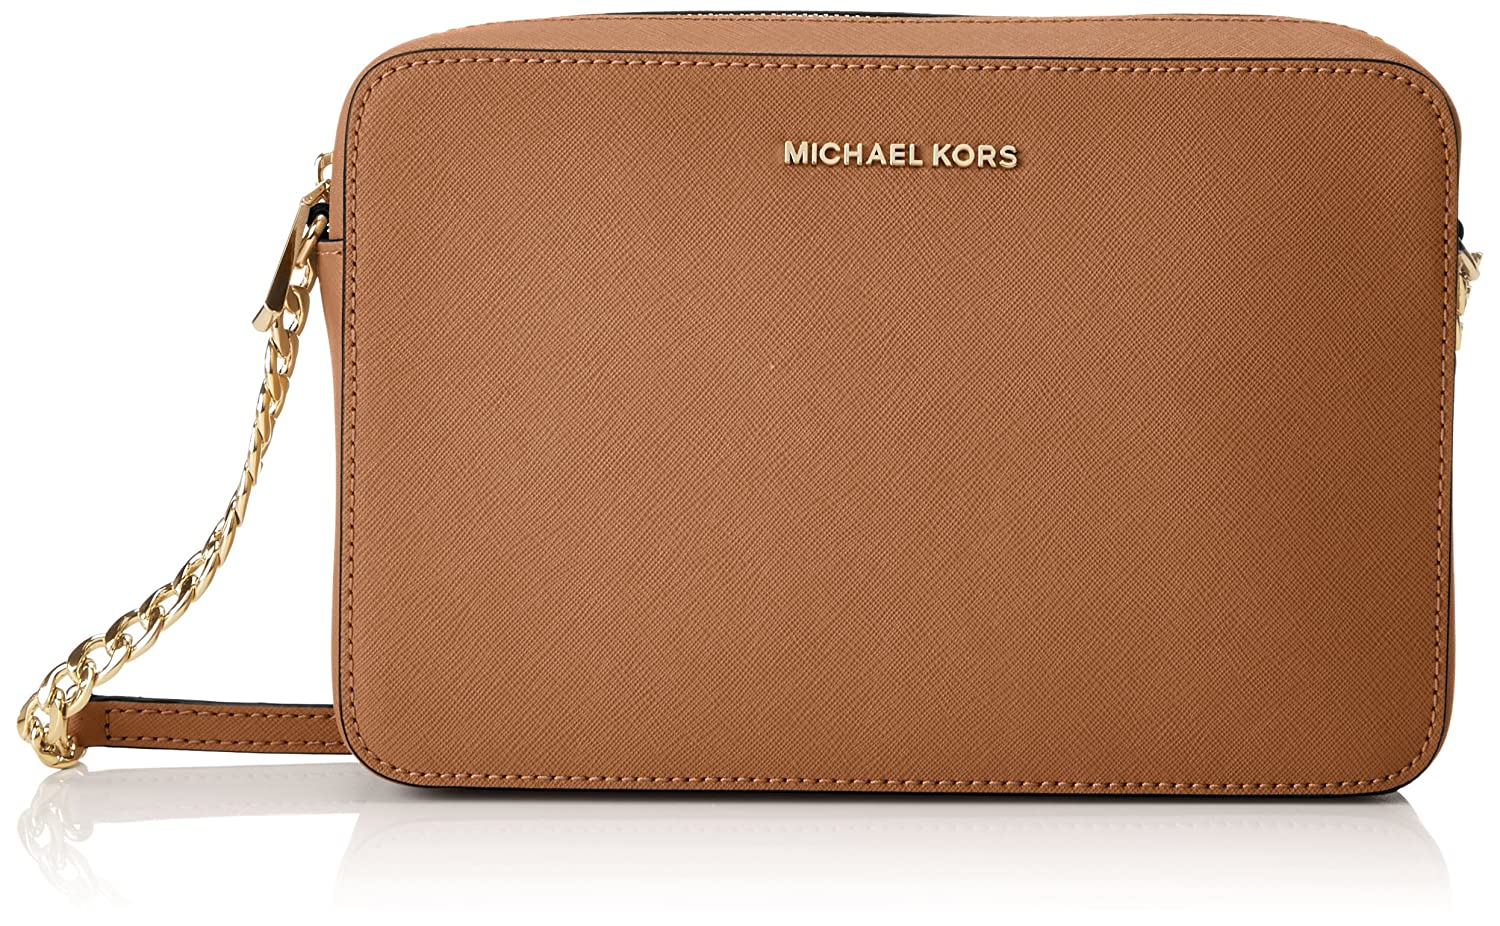 76555059e8de Michael Kors Women's Jet Set Crossbody Leather Bag - Acorn: Handbags:  Amazon.com